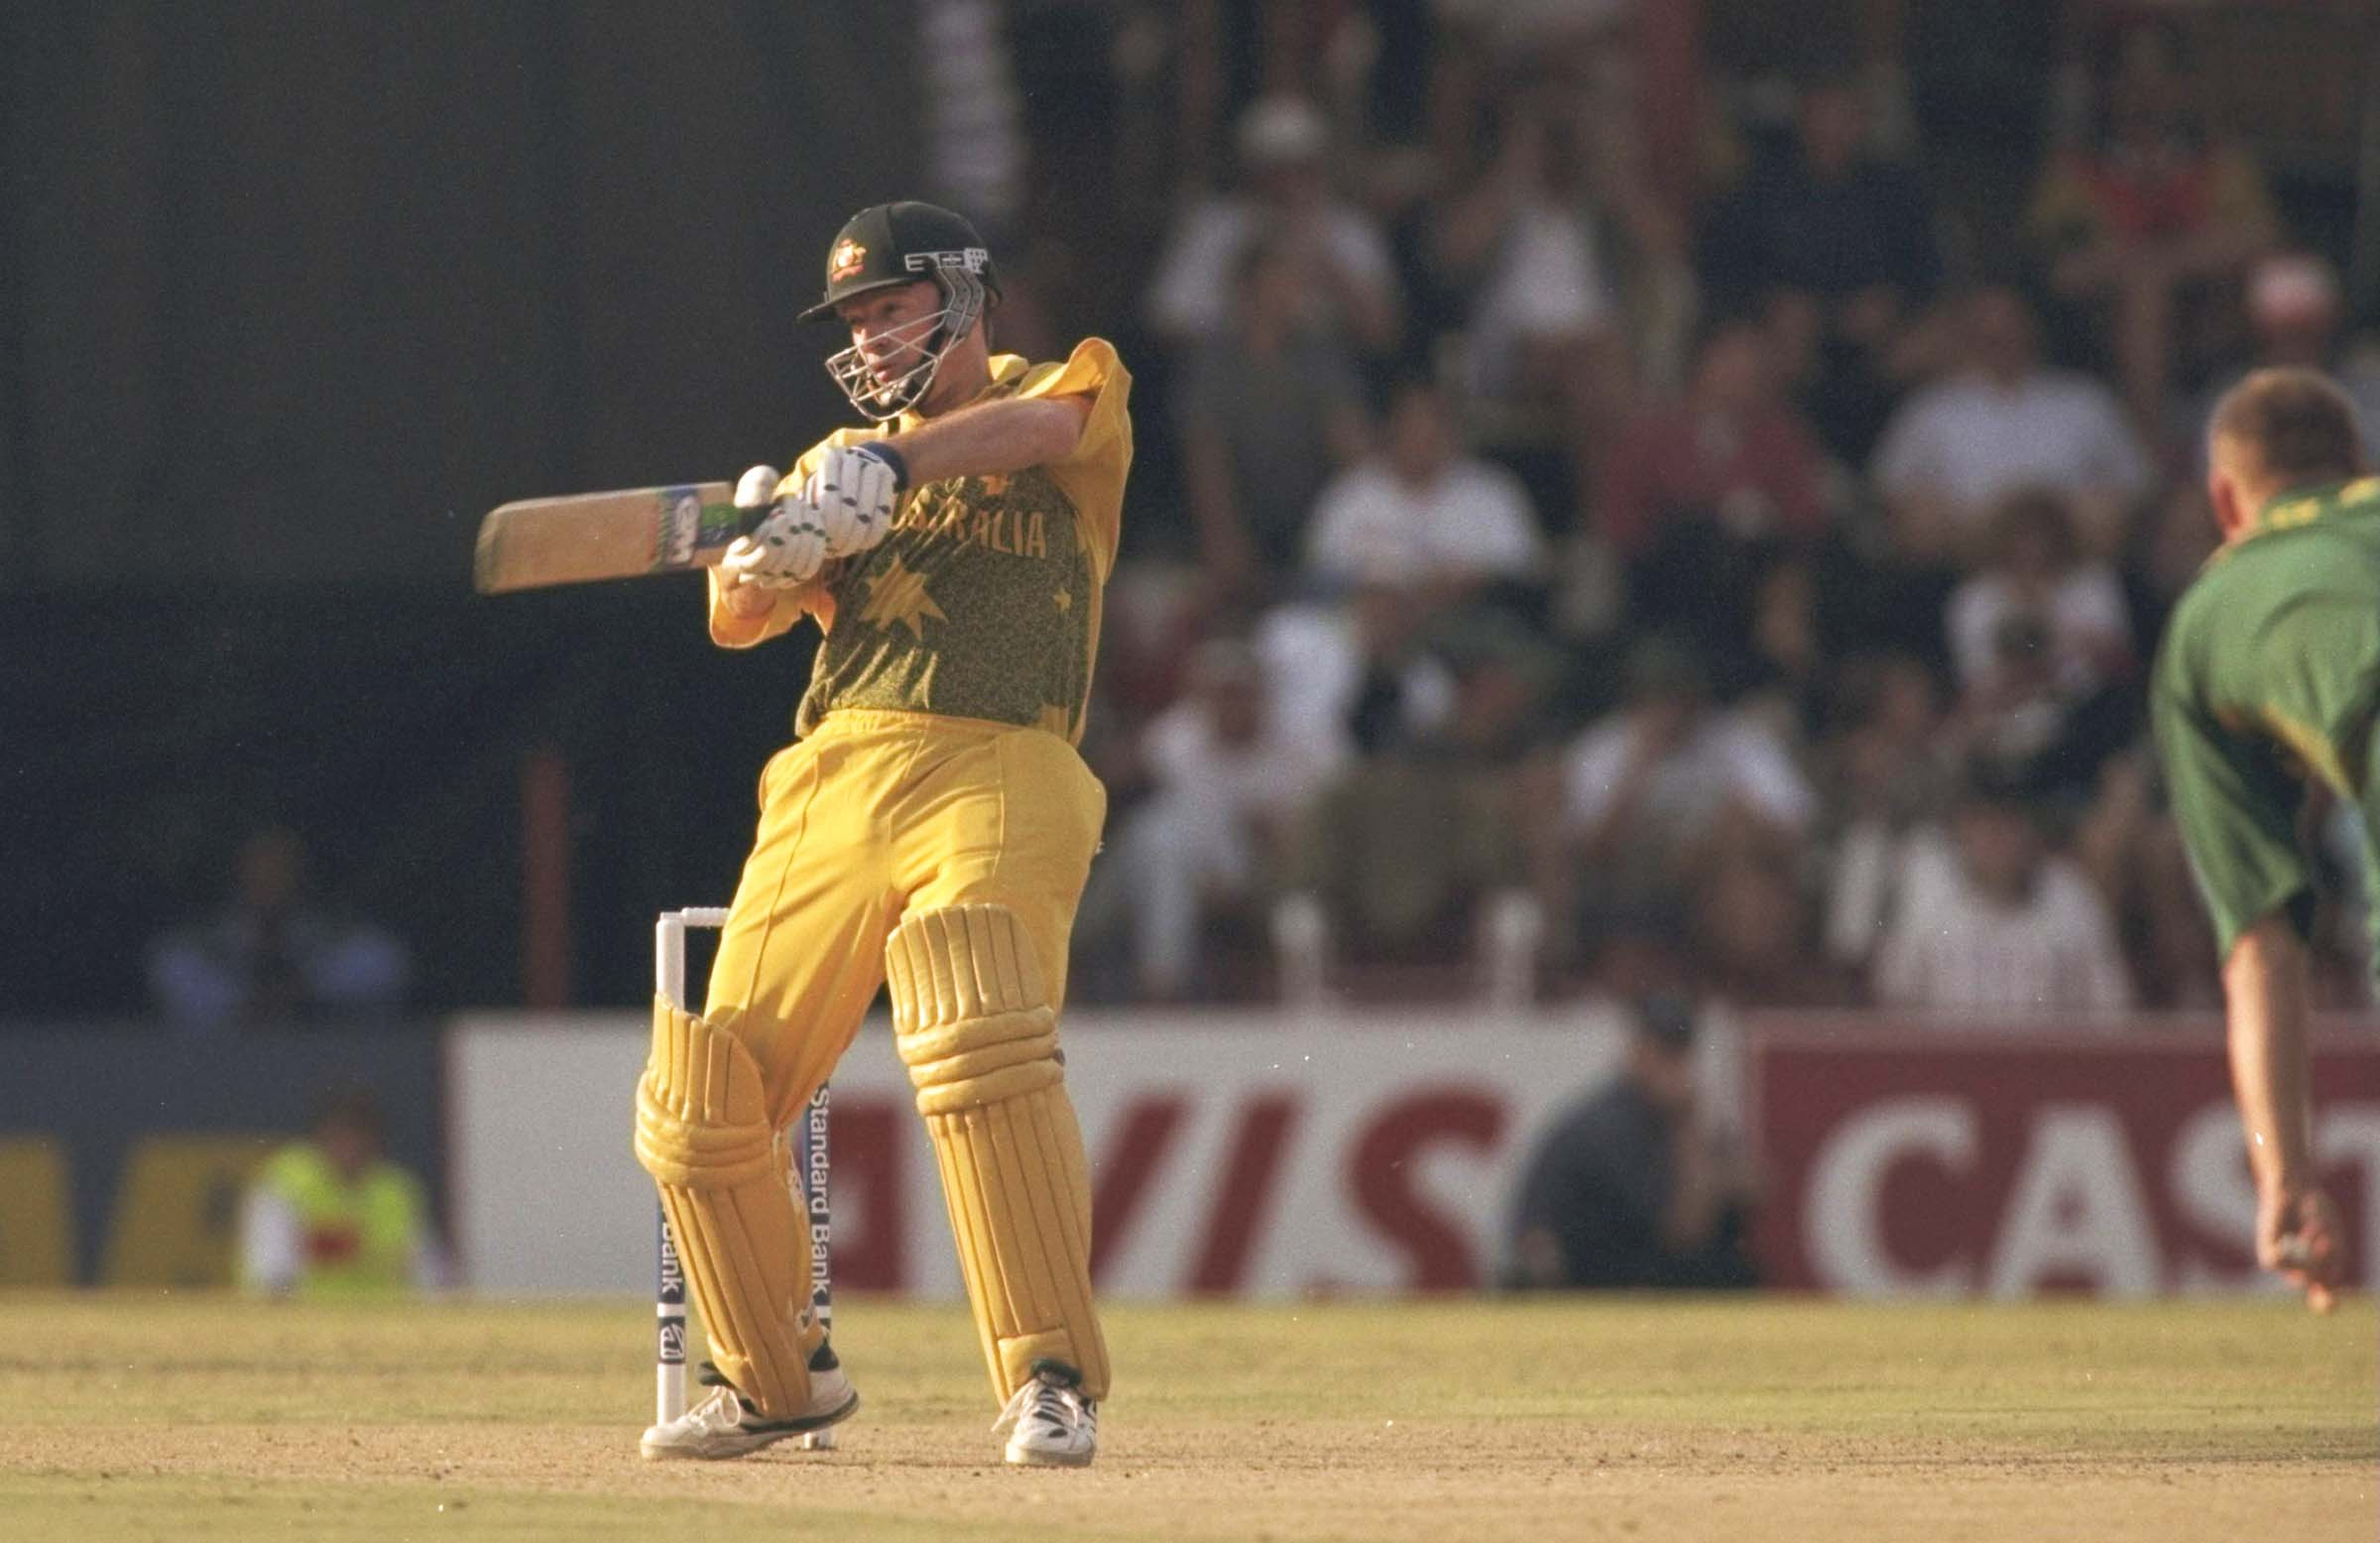 Steve Waugh has taken charge in what is a new era for Australia's ODI side // Getty